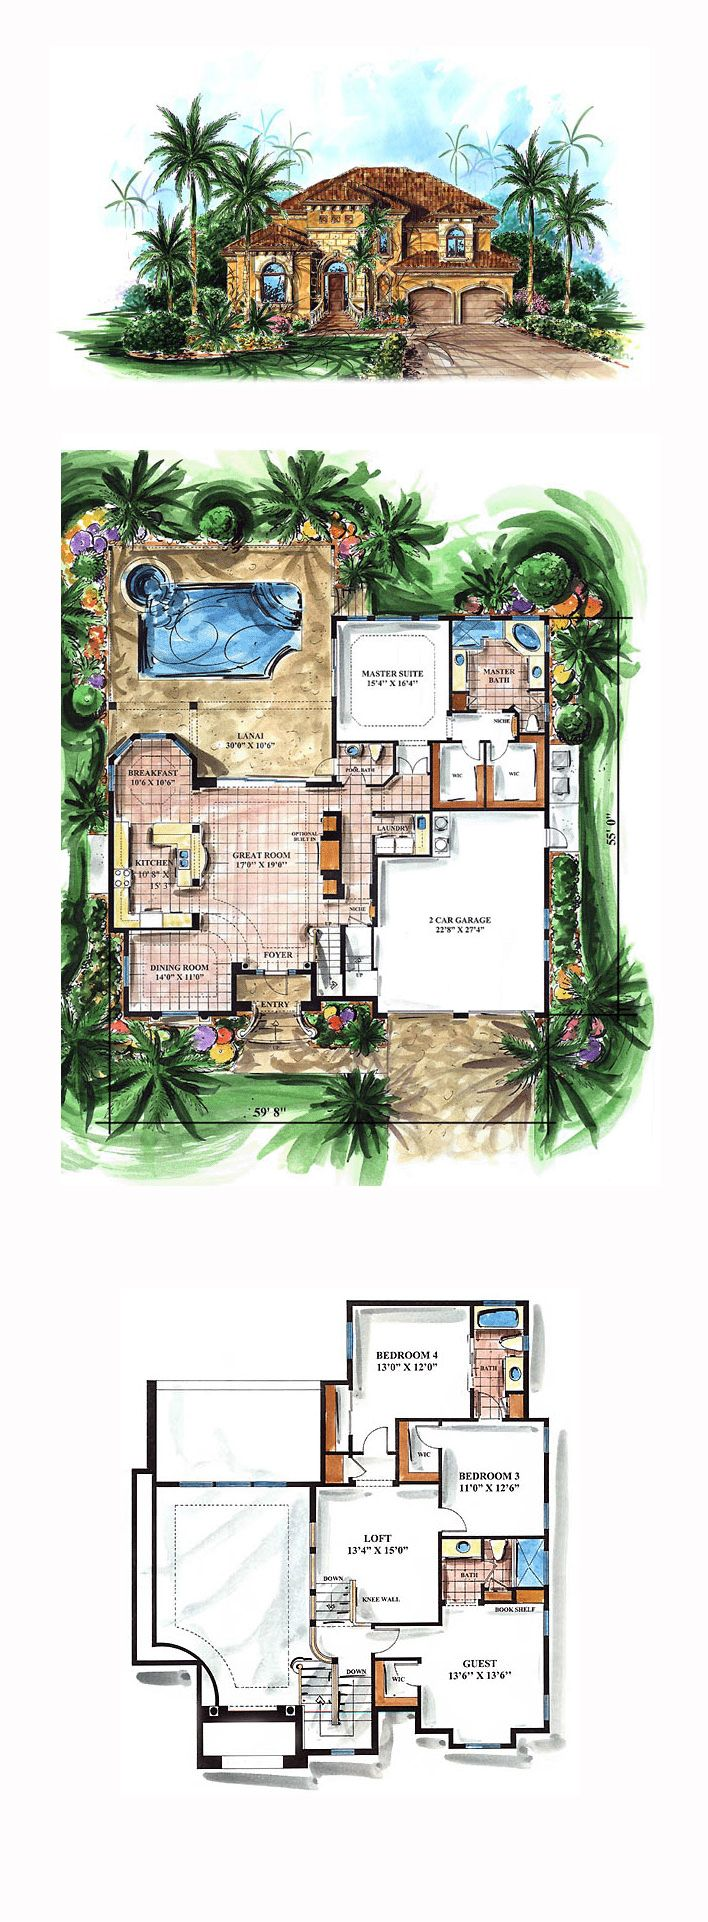 mansion house plans 8 bedrooms best 25 luxury houses ideas on pinterest luxury homes